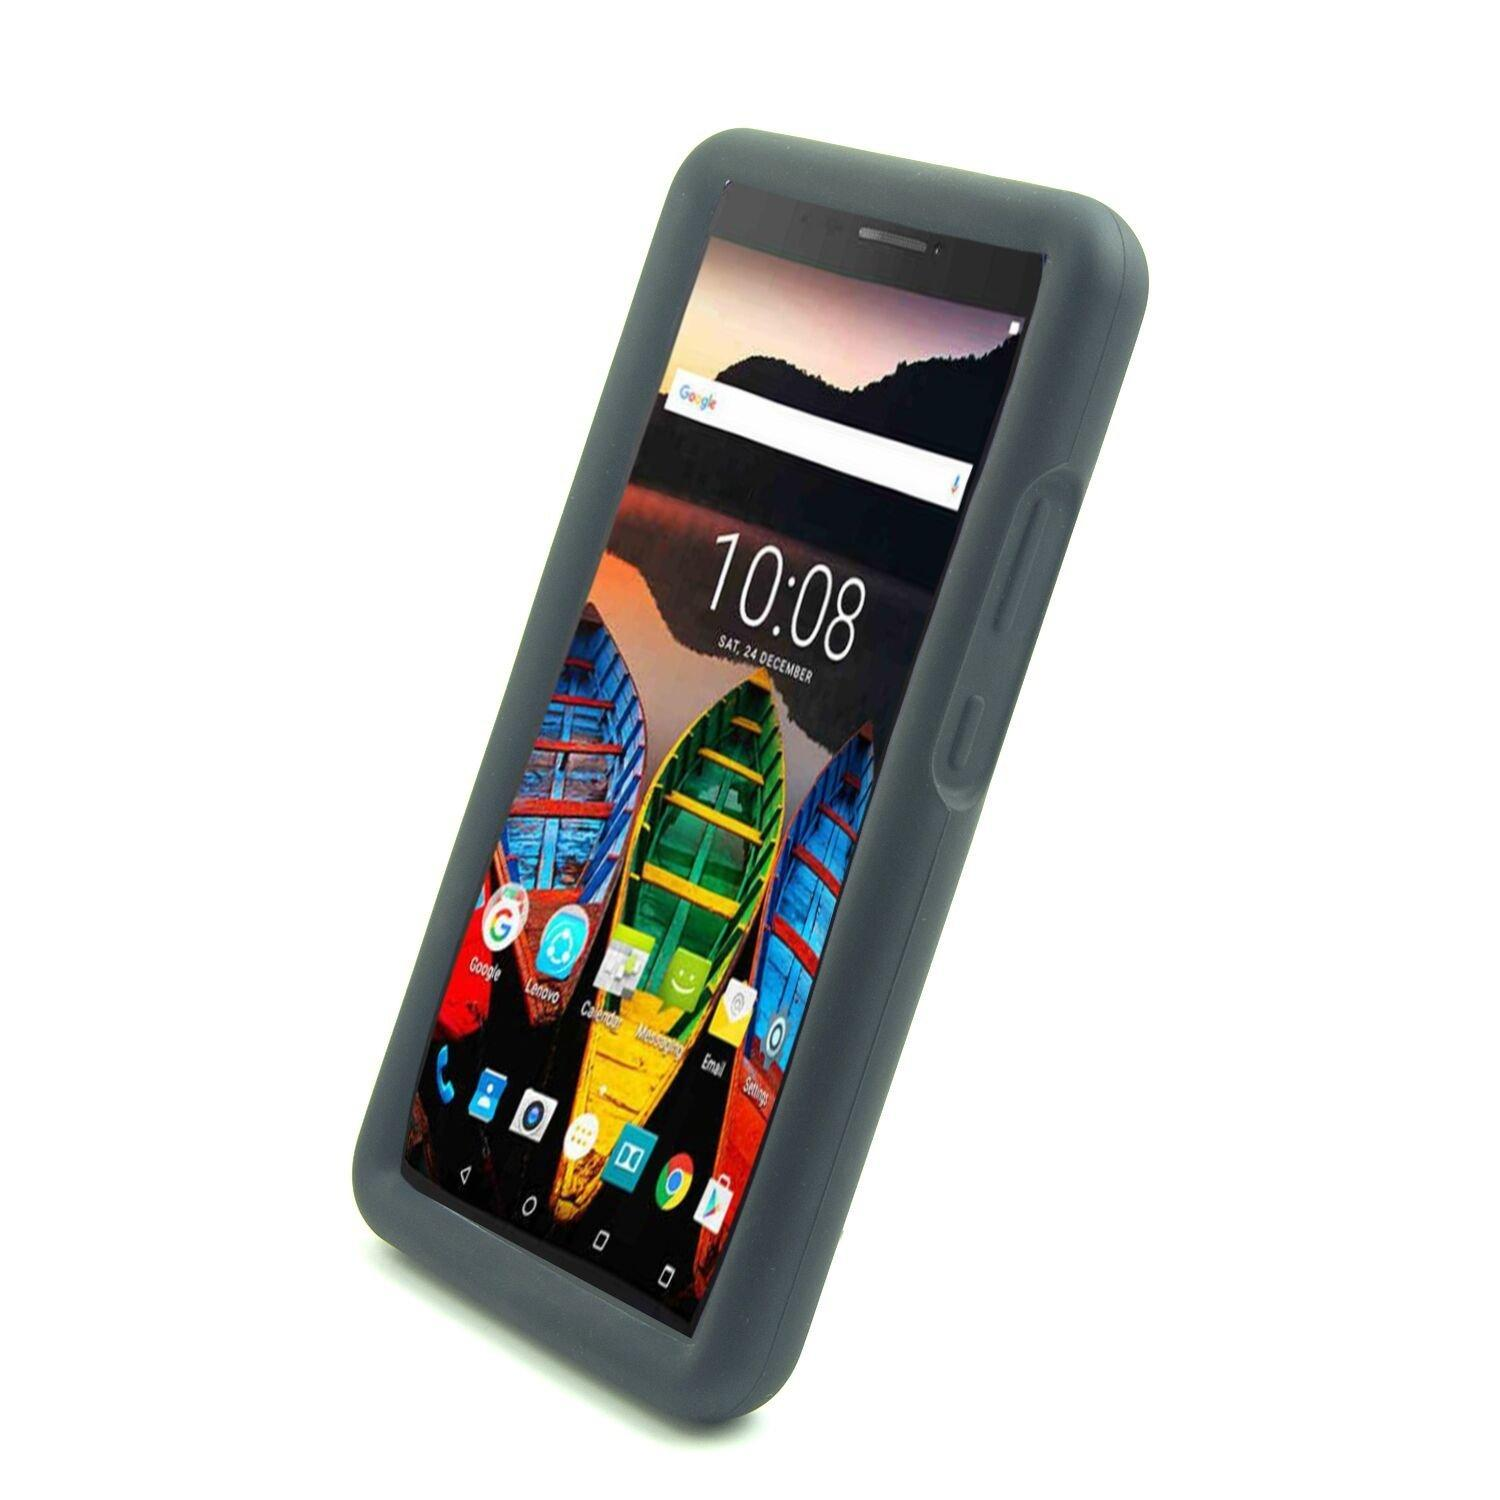 wholesale dealer fa7cb 31591 MingShore Silicone Rugged Case With Handstrap For Lenovo Tab 3 7 Plus Model  TB-7703X/F/N 7.0 Inch Tablet Bumper Cover